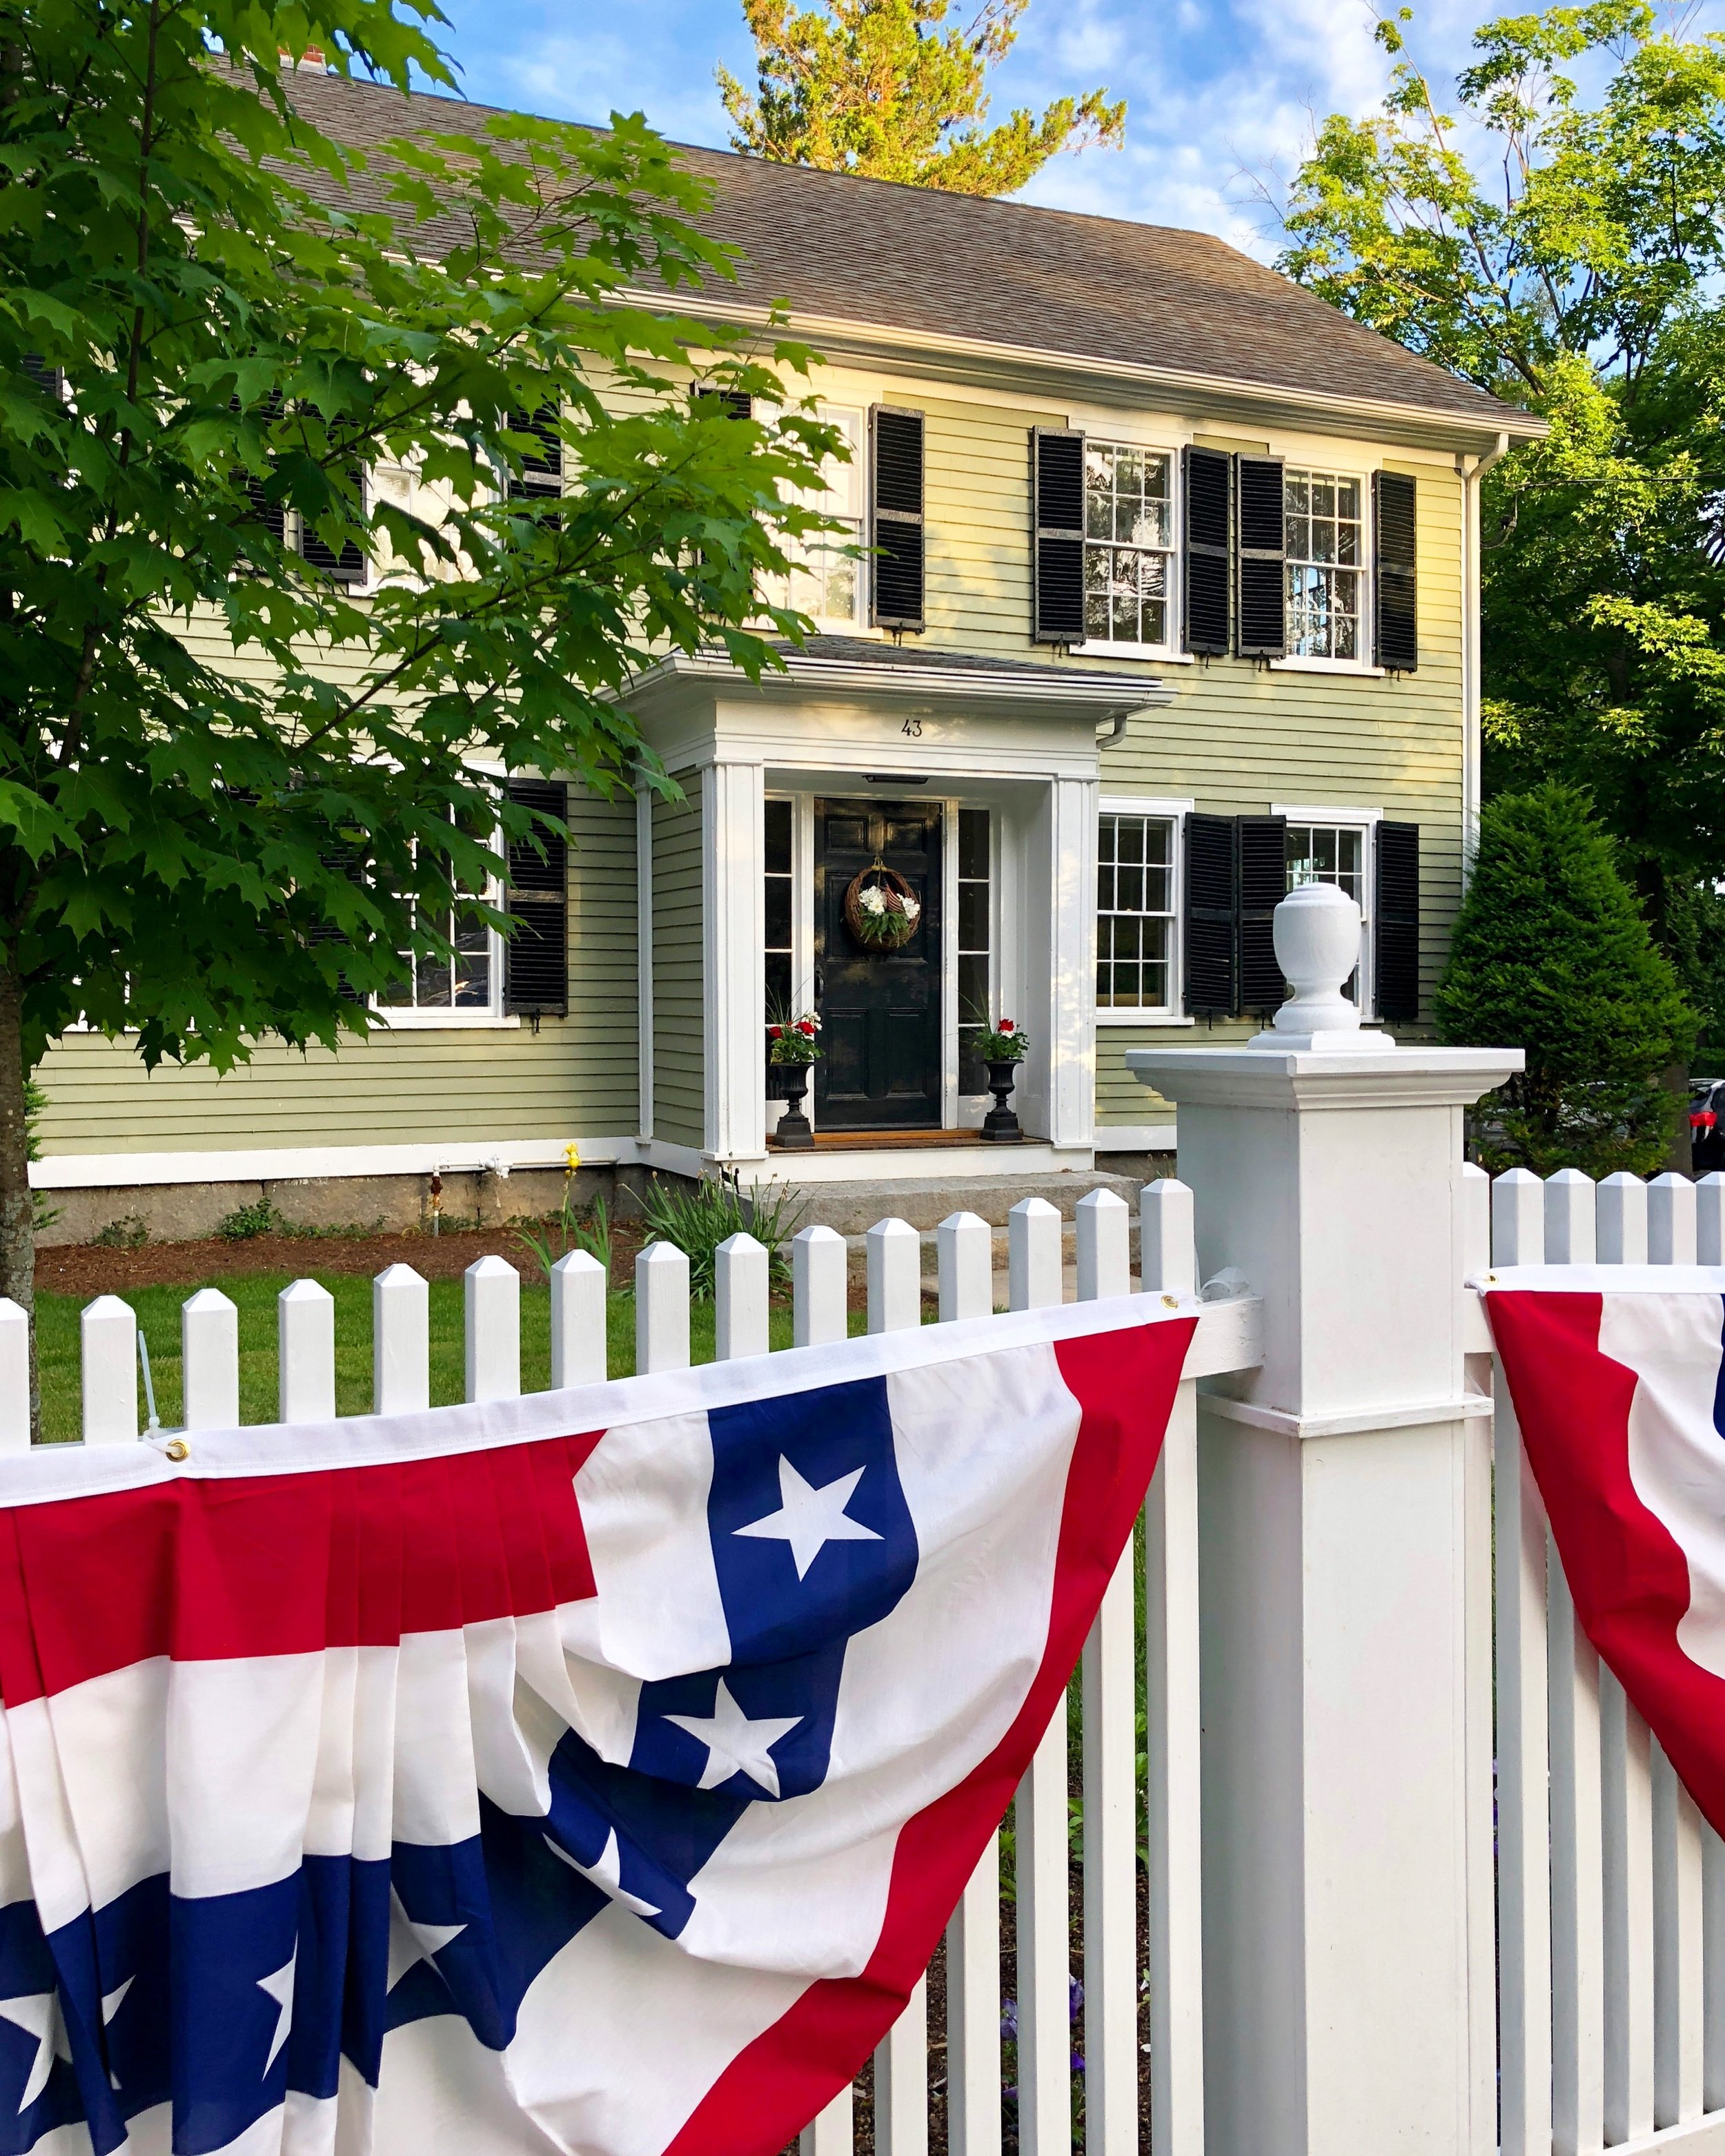 On day four of our moving in, I set out to find fabric red, white, and blue patriotic Bunting for our new home and fence. I could not be more pleased with the quality of this bunting that is made in the usa.